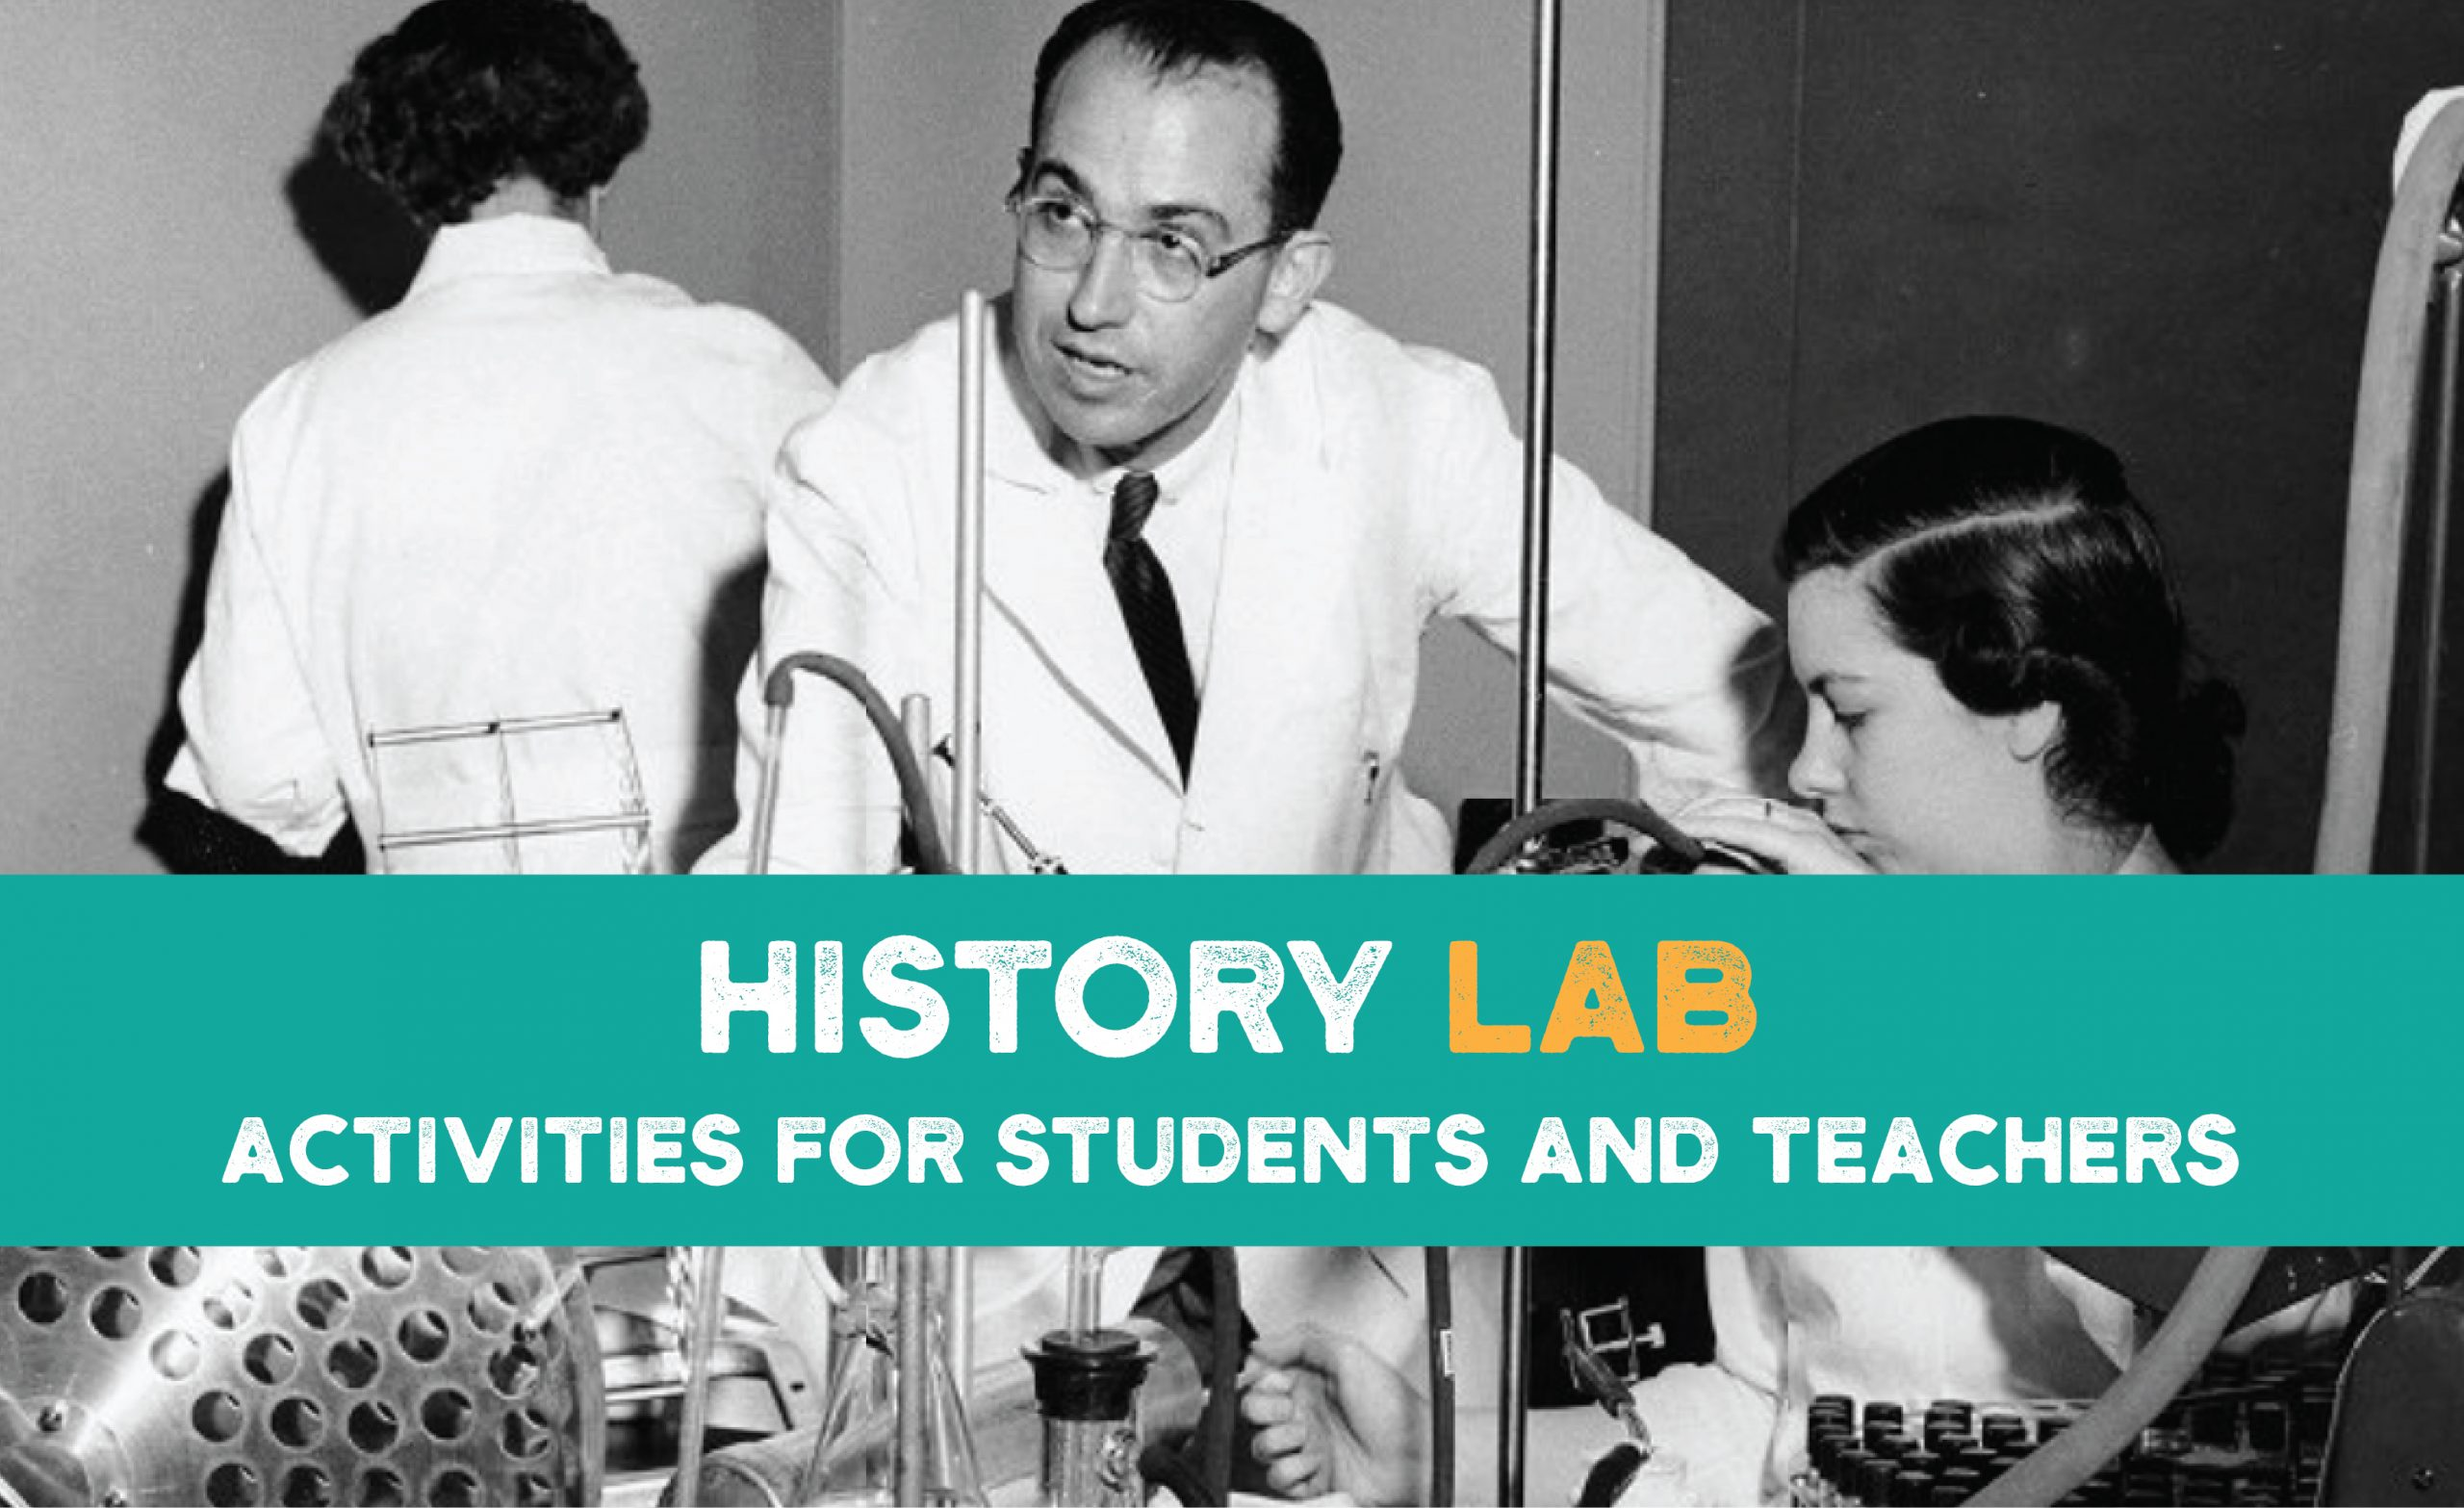 History Lab: For Students and Teachers